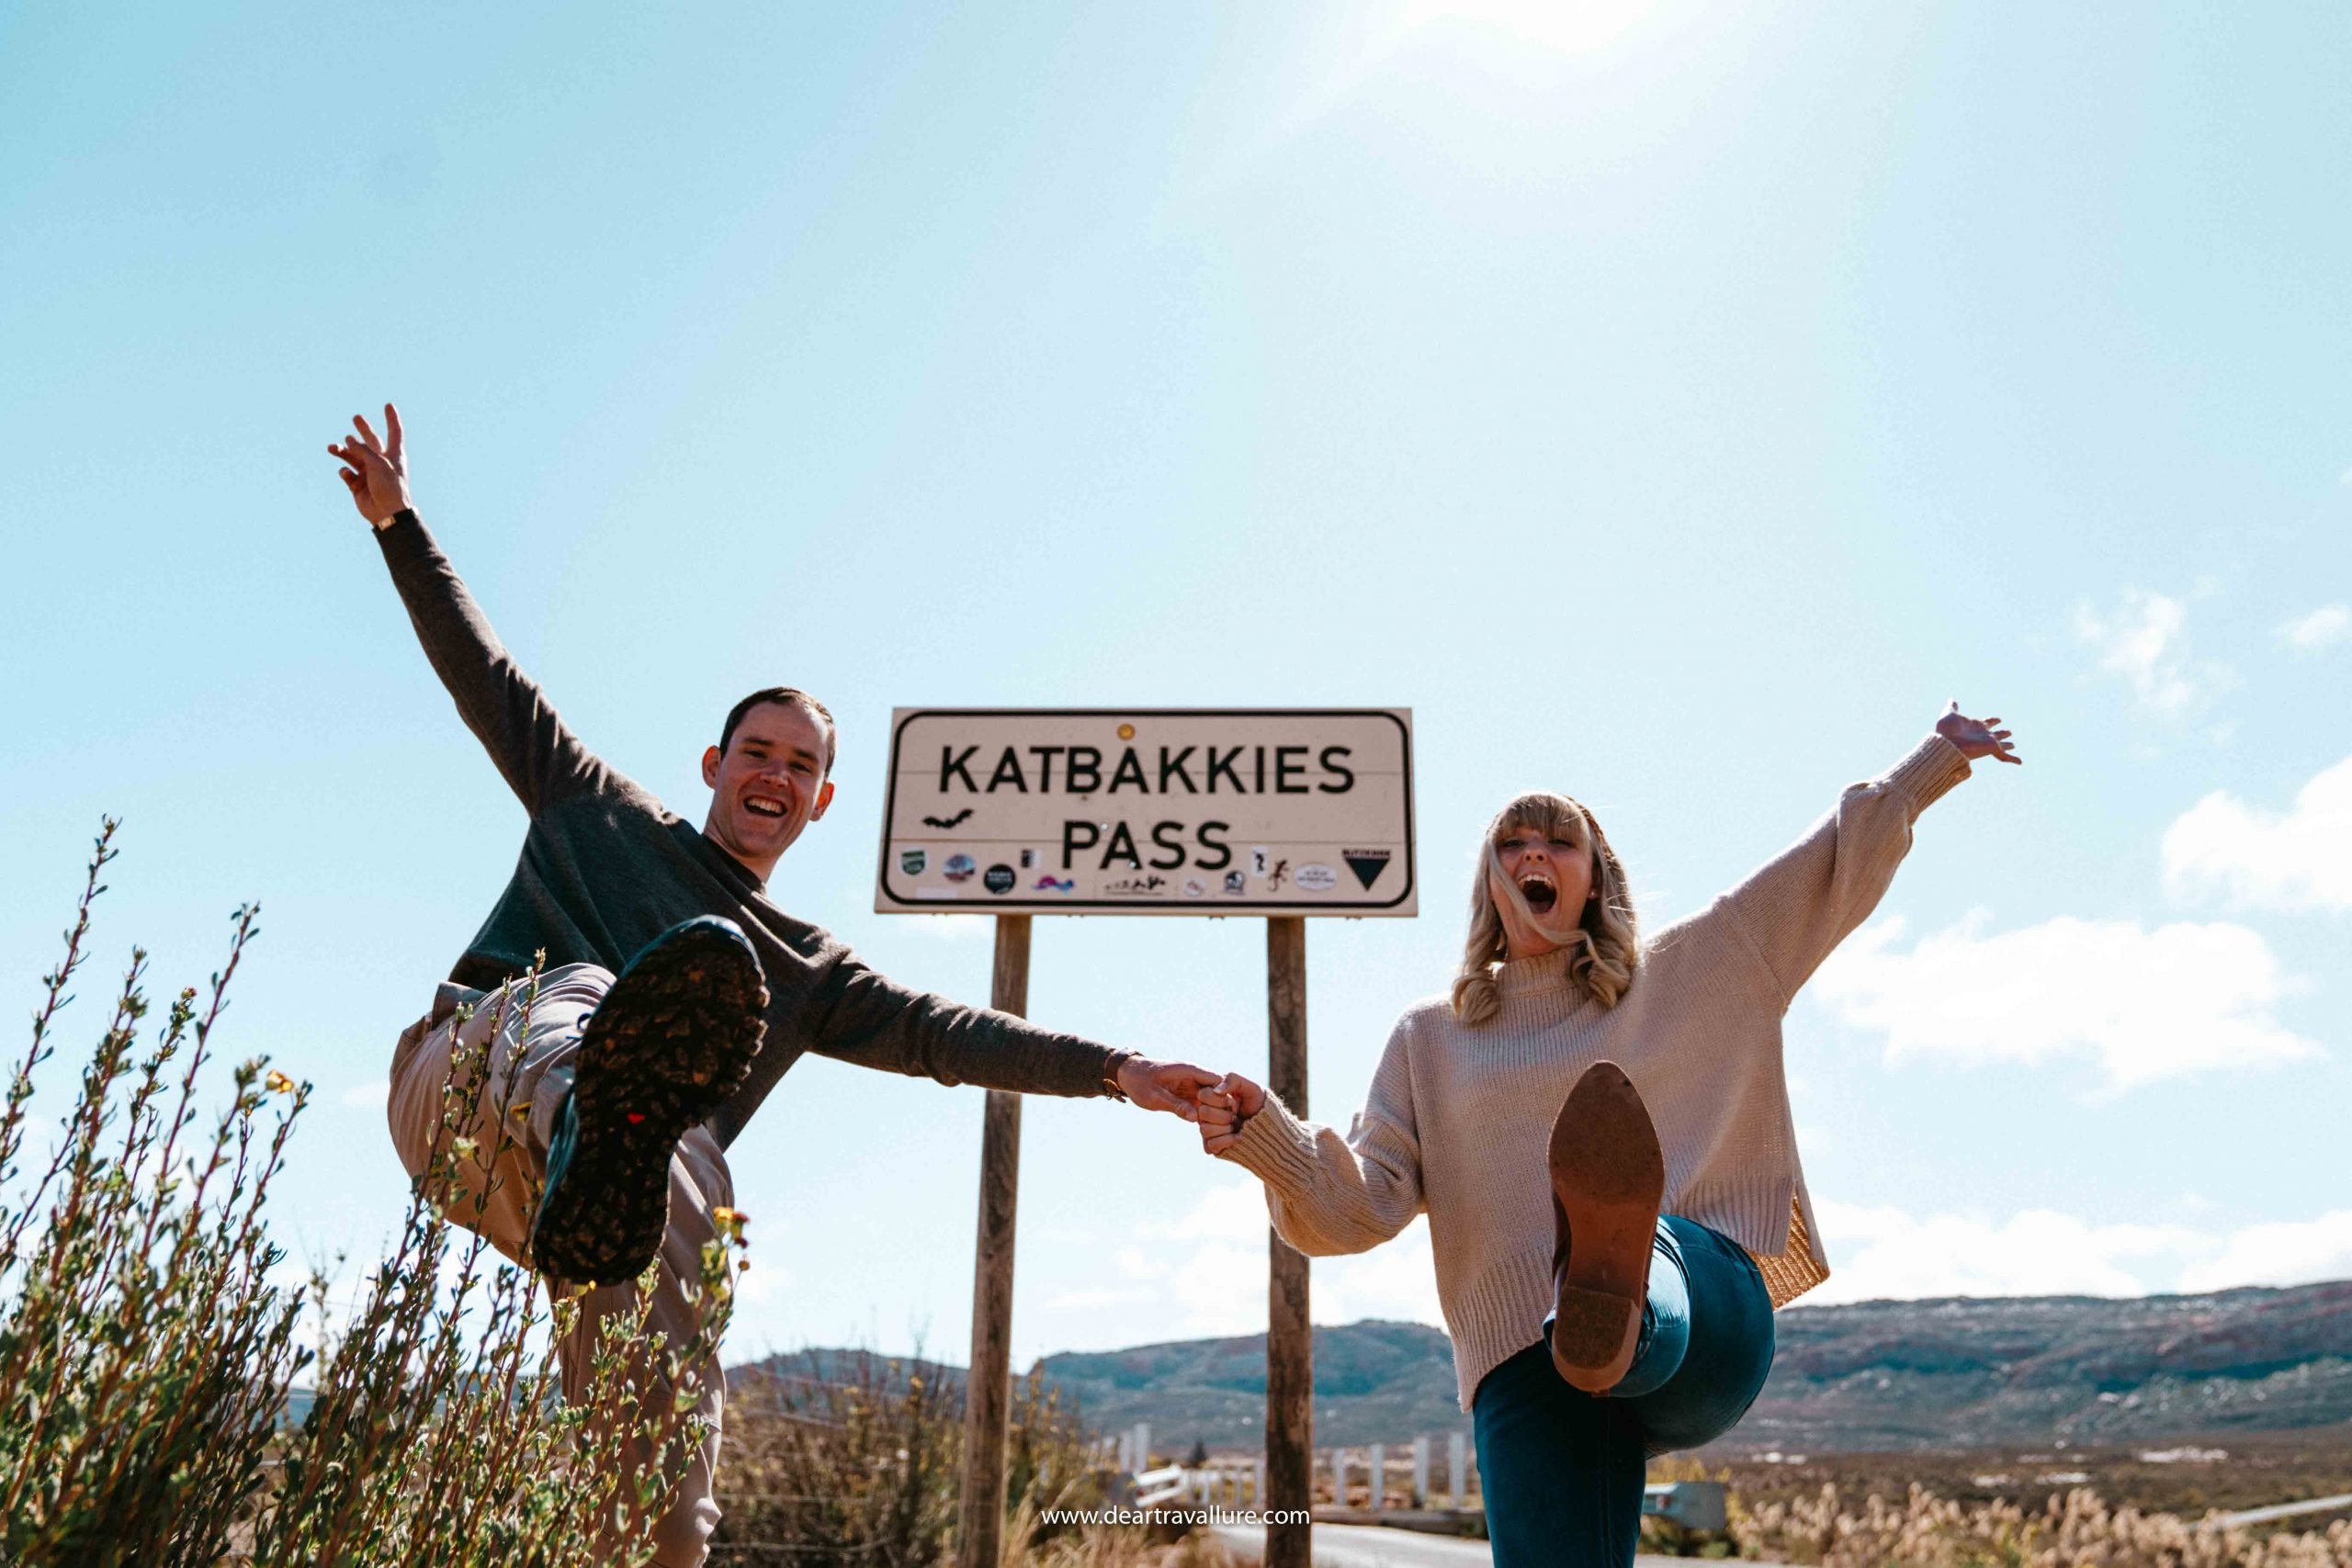 Byron and Tammy with outstretched arms by the Katbakkies Sign